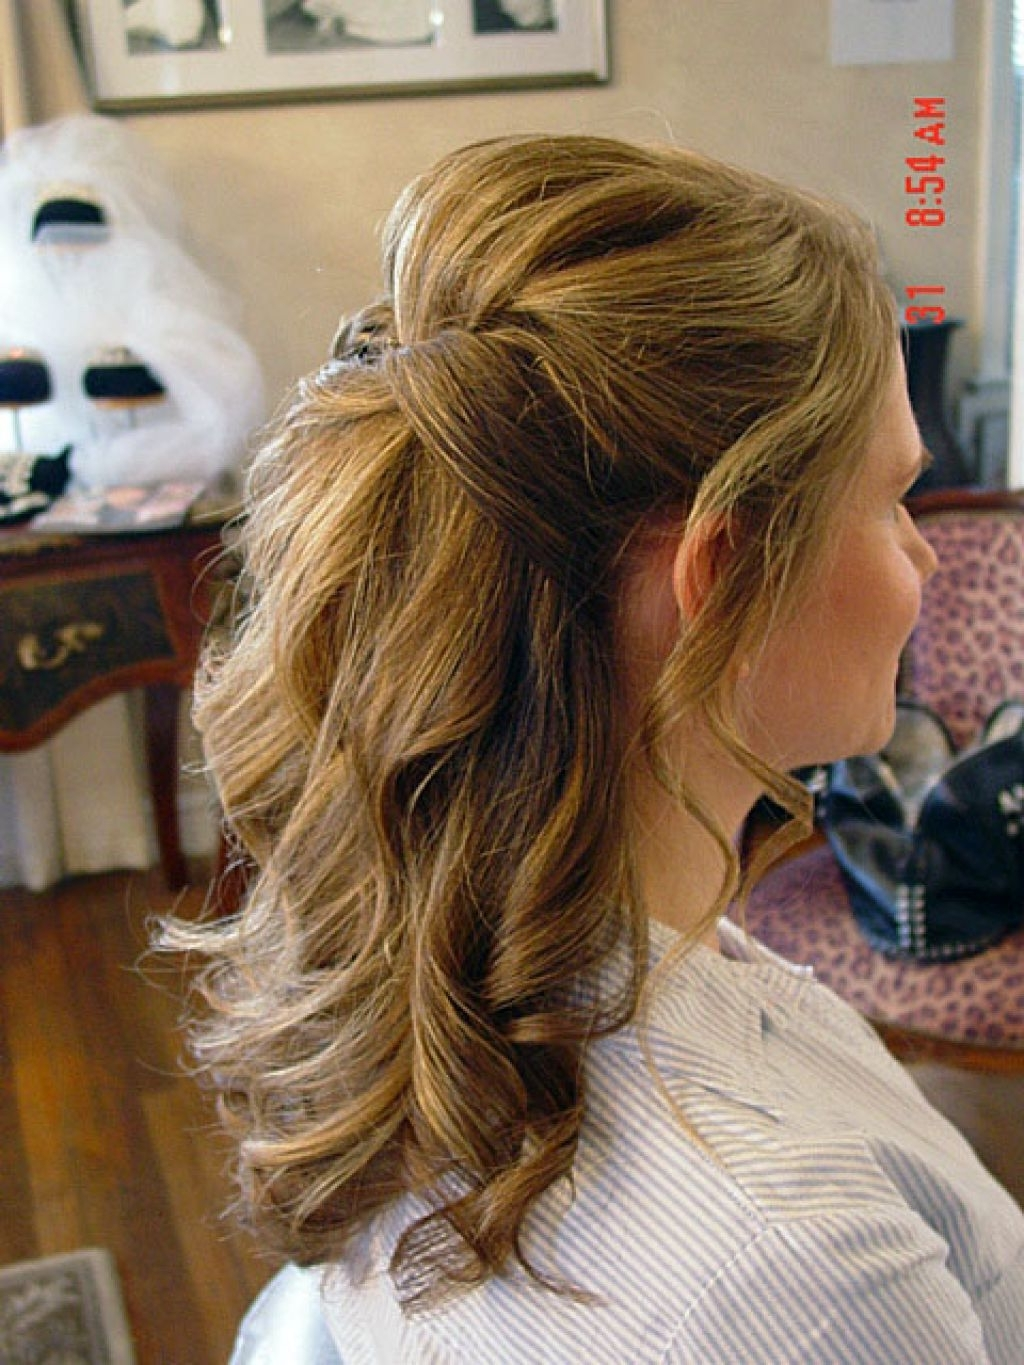 Half Up Half Down Wedding Hair Updo | Hairstyle | Pinterest With Regard To Half Hair Updos For Medium Length Hair (View 8 of 15)